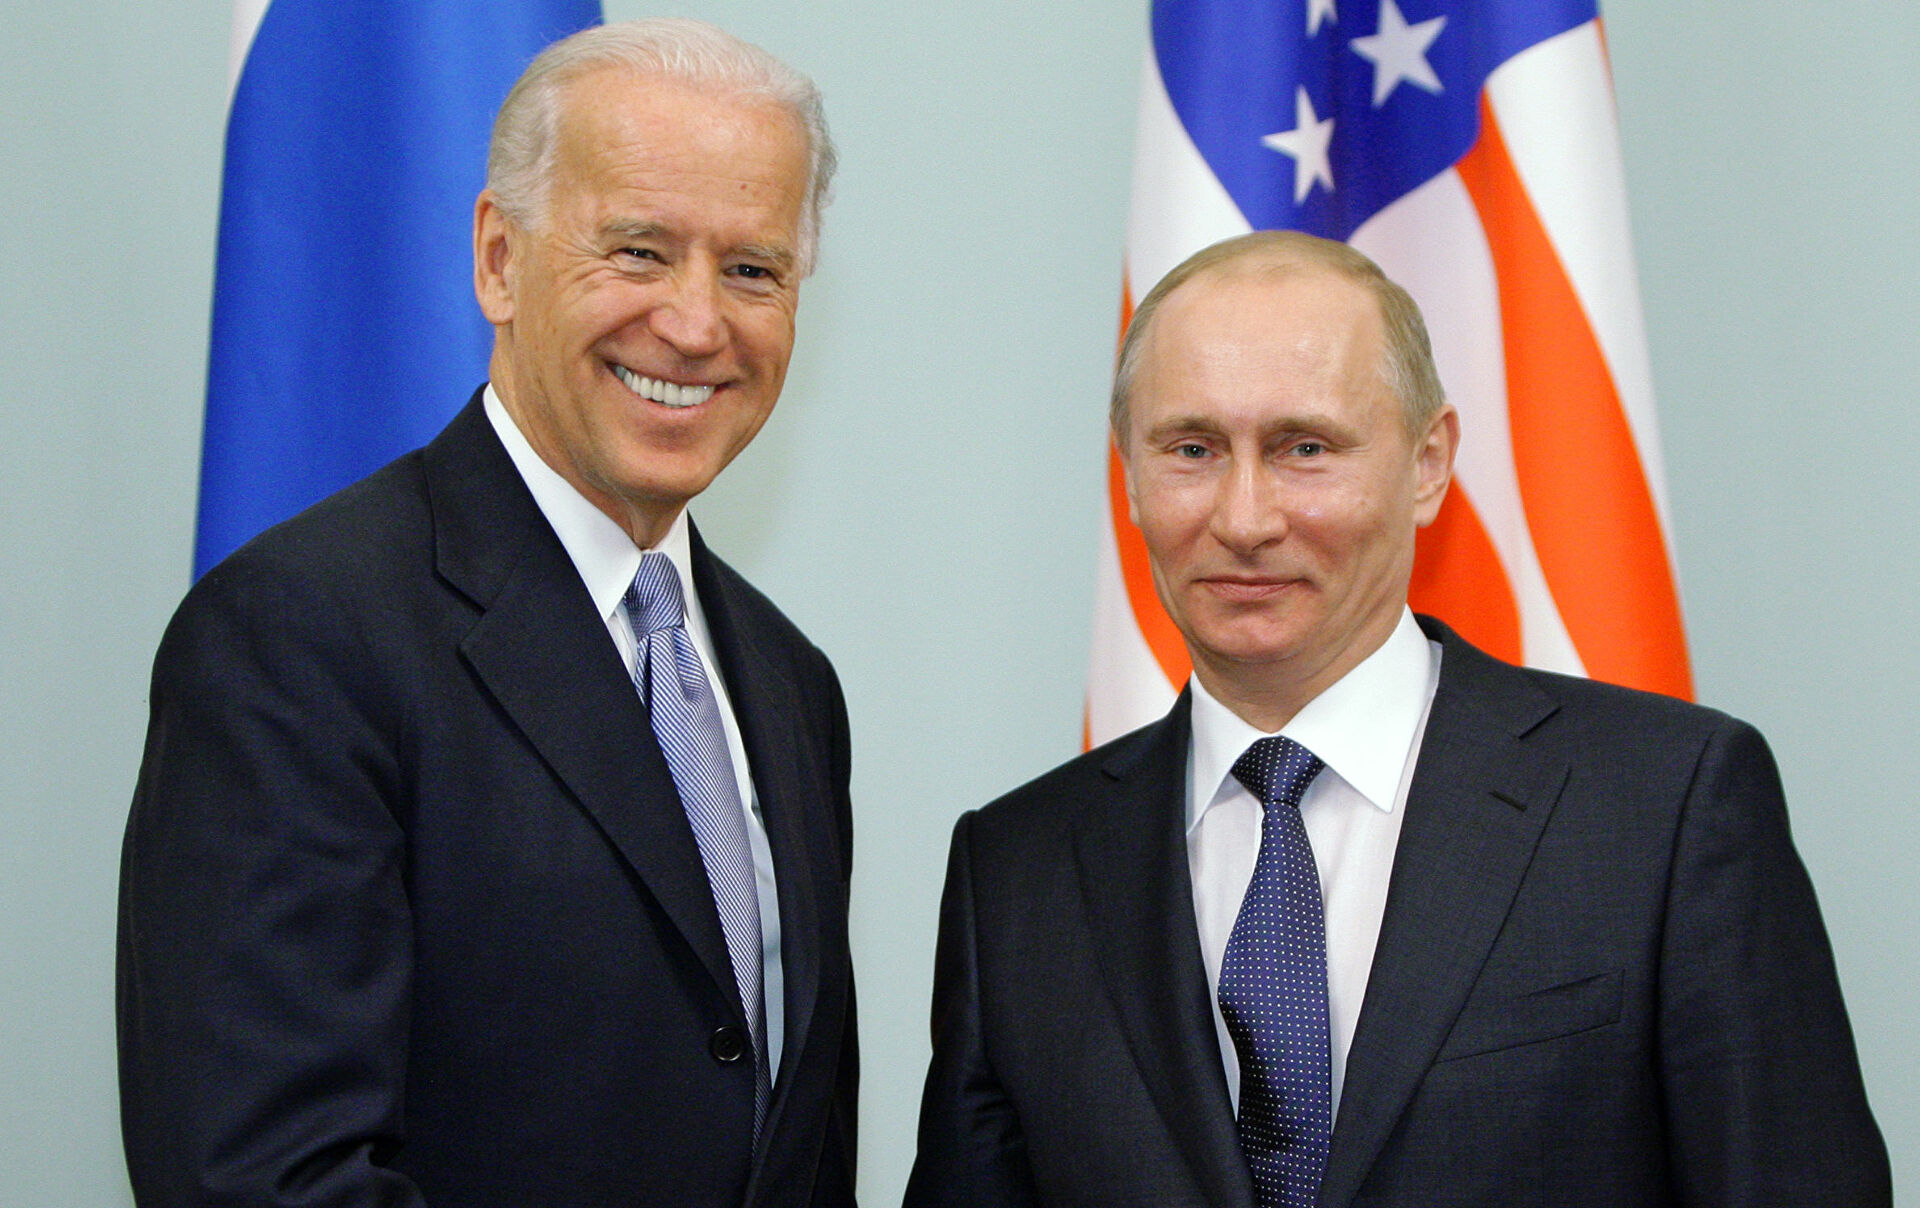 Growing public tensions over upcoming meeting between Russian and US leaders